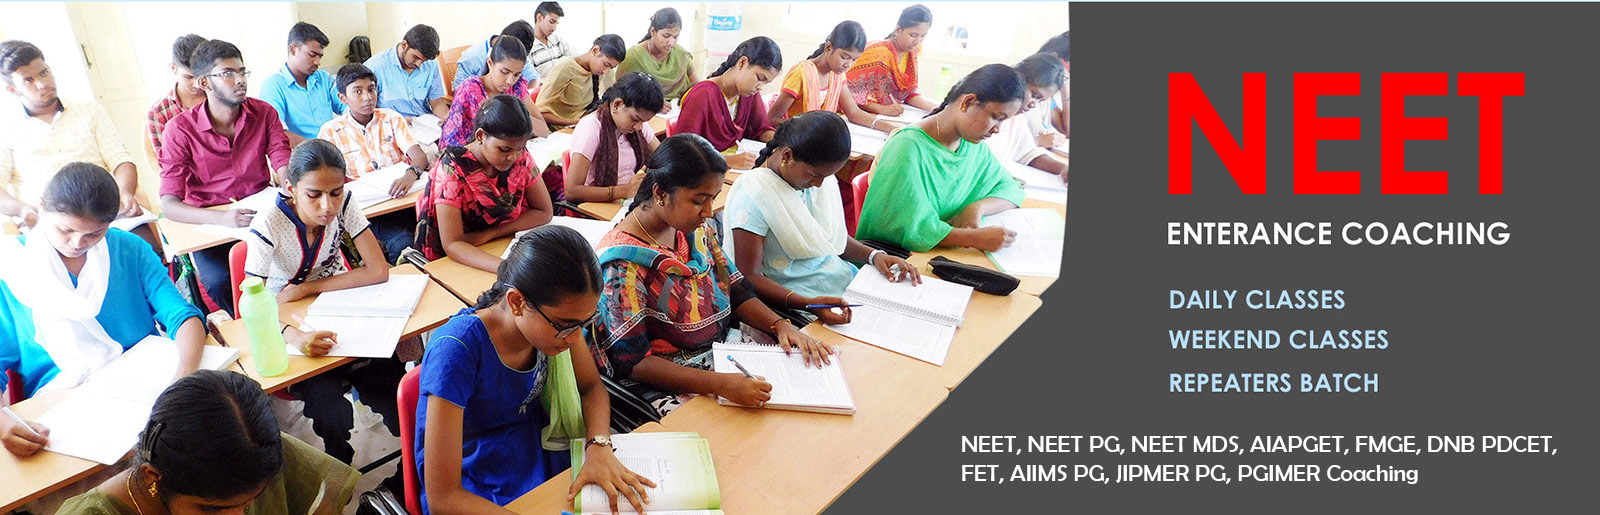 No-1 NEET JPG Coaching in Delhi, Supper NEET JPG Coaching in Delhi, Topper NEET JPG Coaching in Delhi